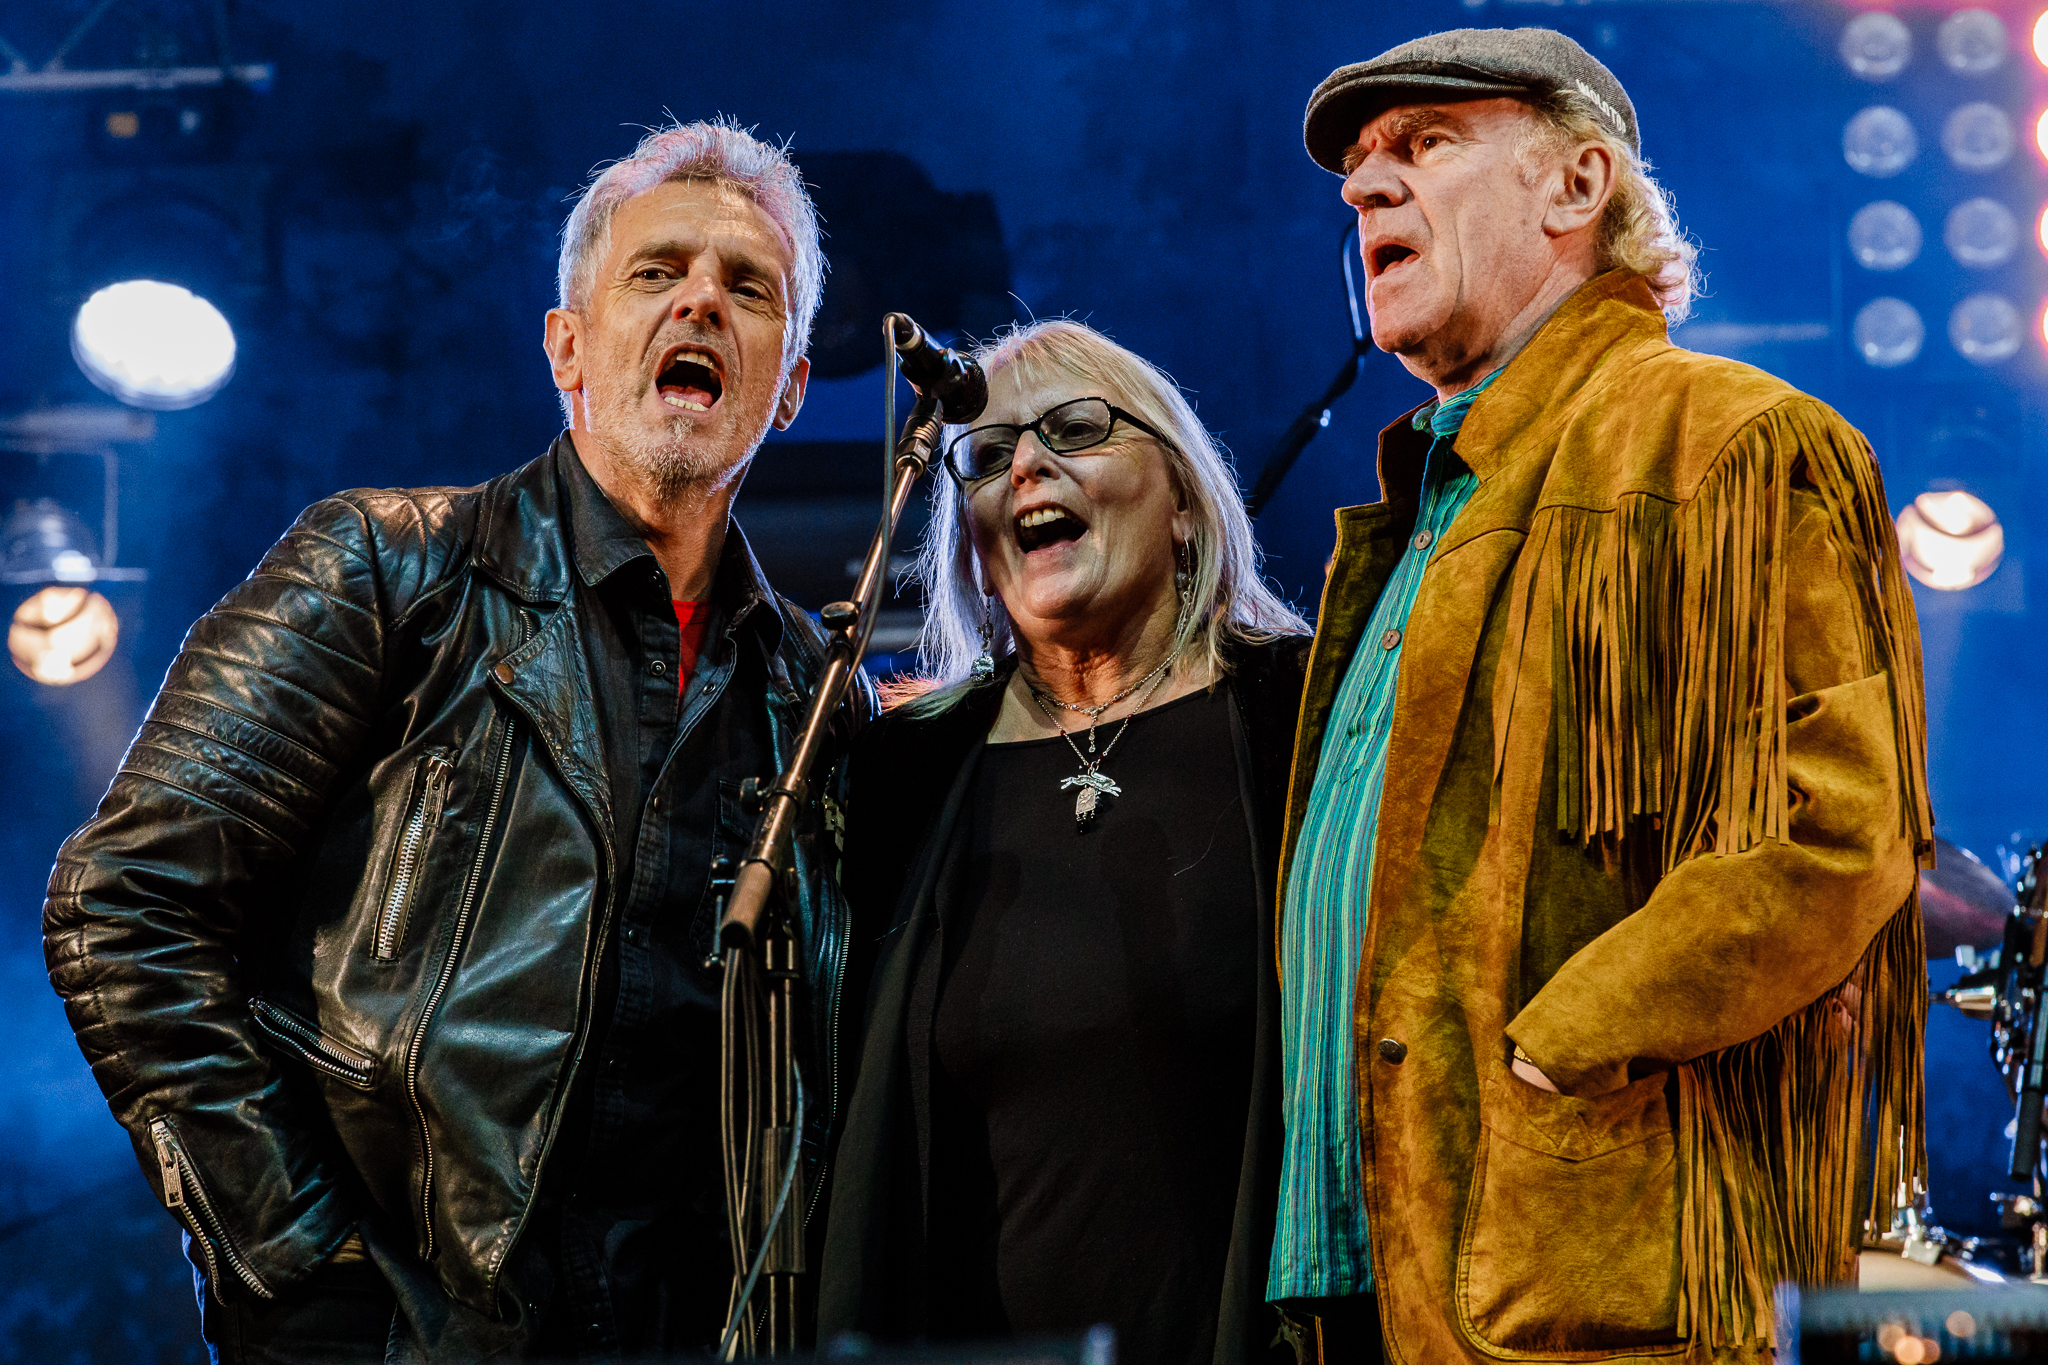 """Fairport Convention was joined onstage by many former members. Here three from the band's earliest incarnation - Iain Matthews, Judy Dyble, and Ashley Hutchings - join in to close out the festival with """"Meet On the Ledge,"""" one of the group's best-known songs. (photo by Matt Condon /  @arcane93 )"""